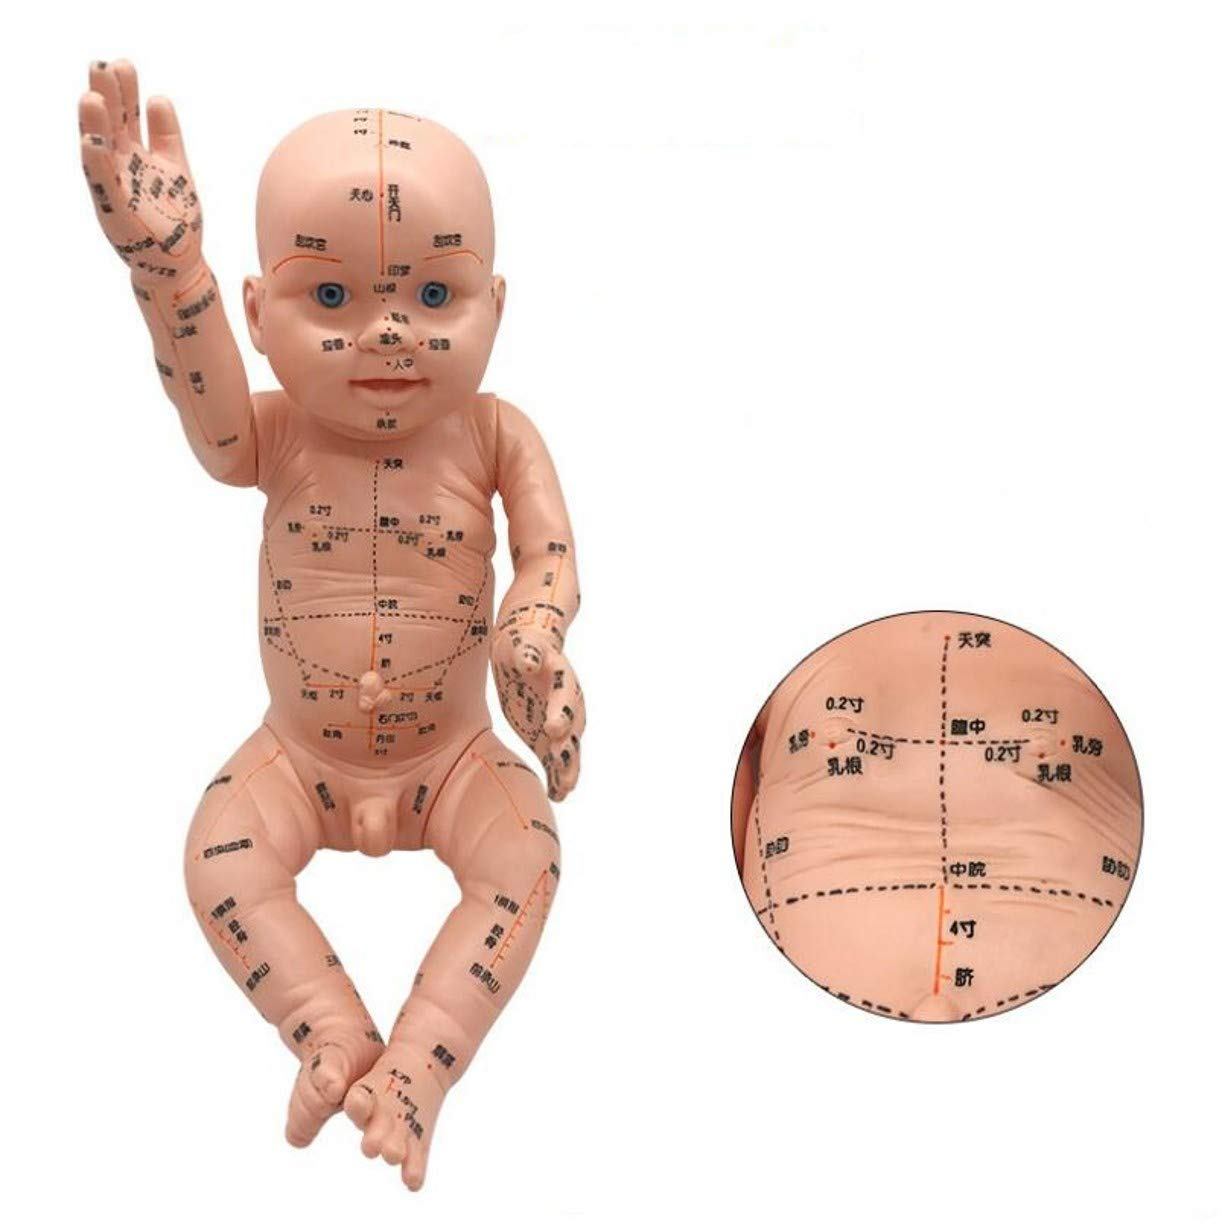 WellieSTR 52cm Mannequin Baby, Acupoint and Trigger Point Therapy Mold for Babies,Baby Reflex Zone Model Acupuncture Model, Chinese Language TCM Reflexology,Domestic Nursing Yuesao Training